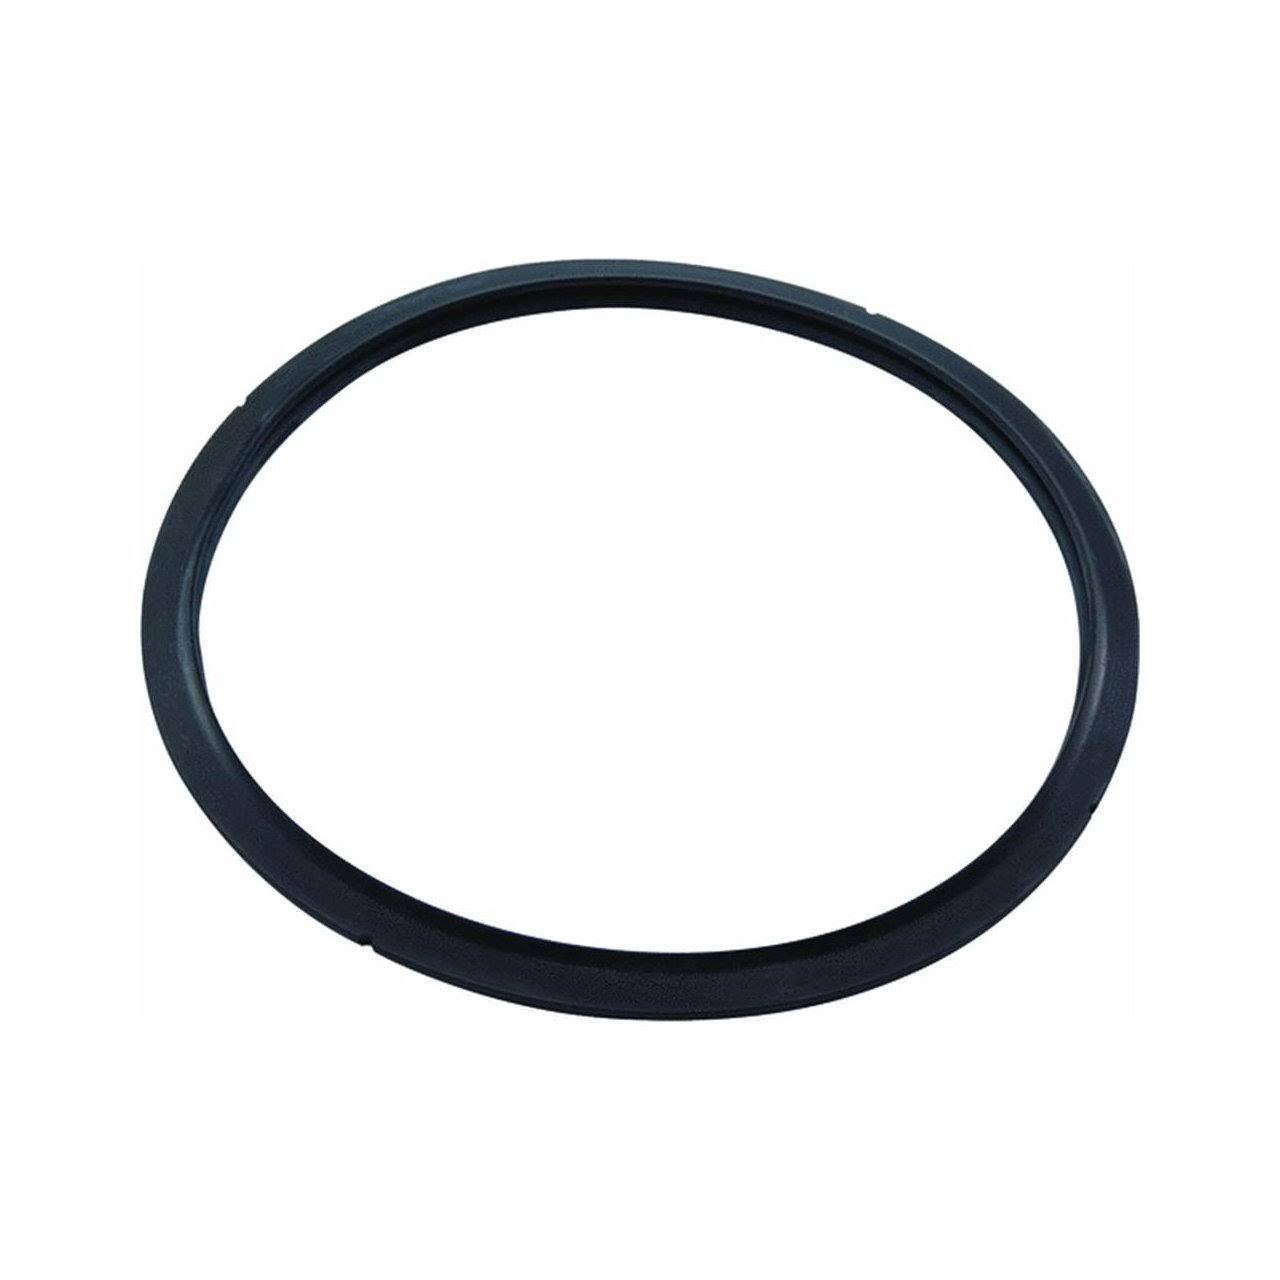 Mirro, 9882000, Gasket for M Series 12 Quart and 22 Quart Pressure Cookers